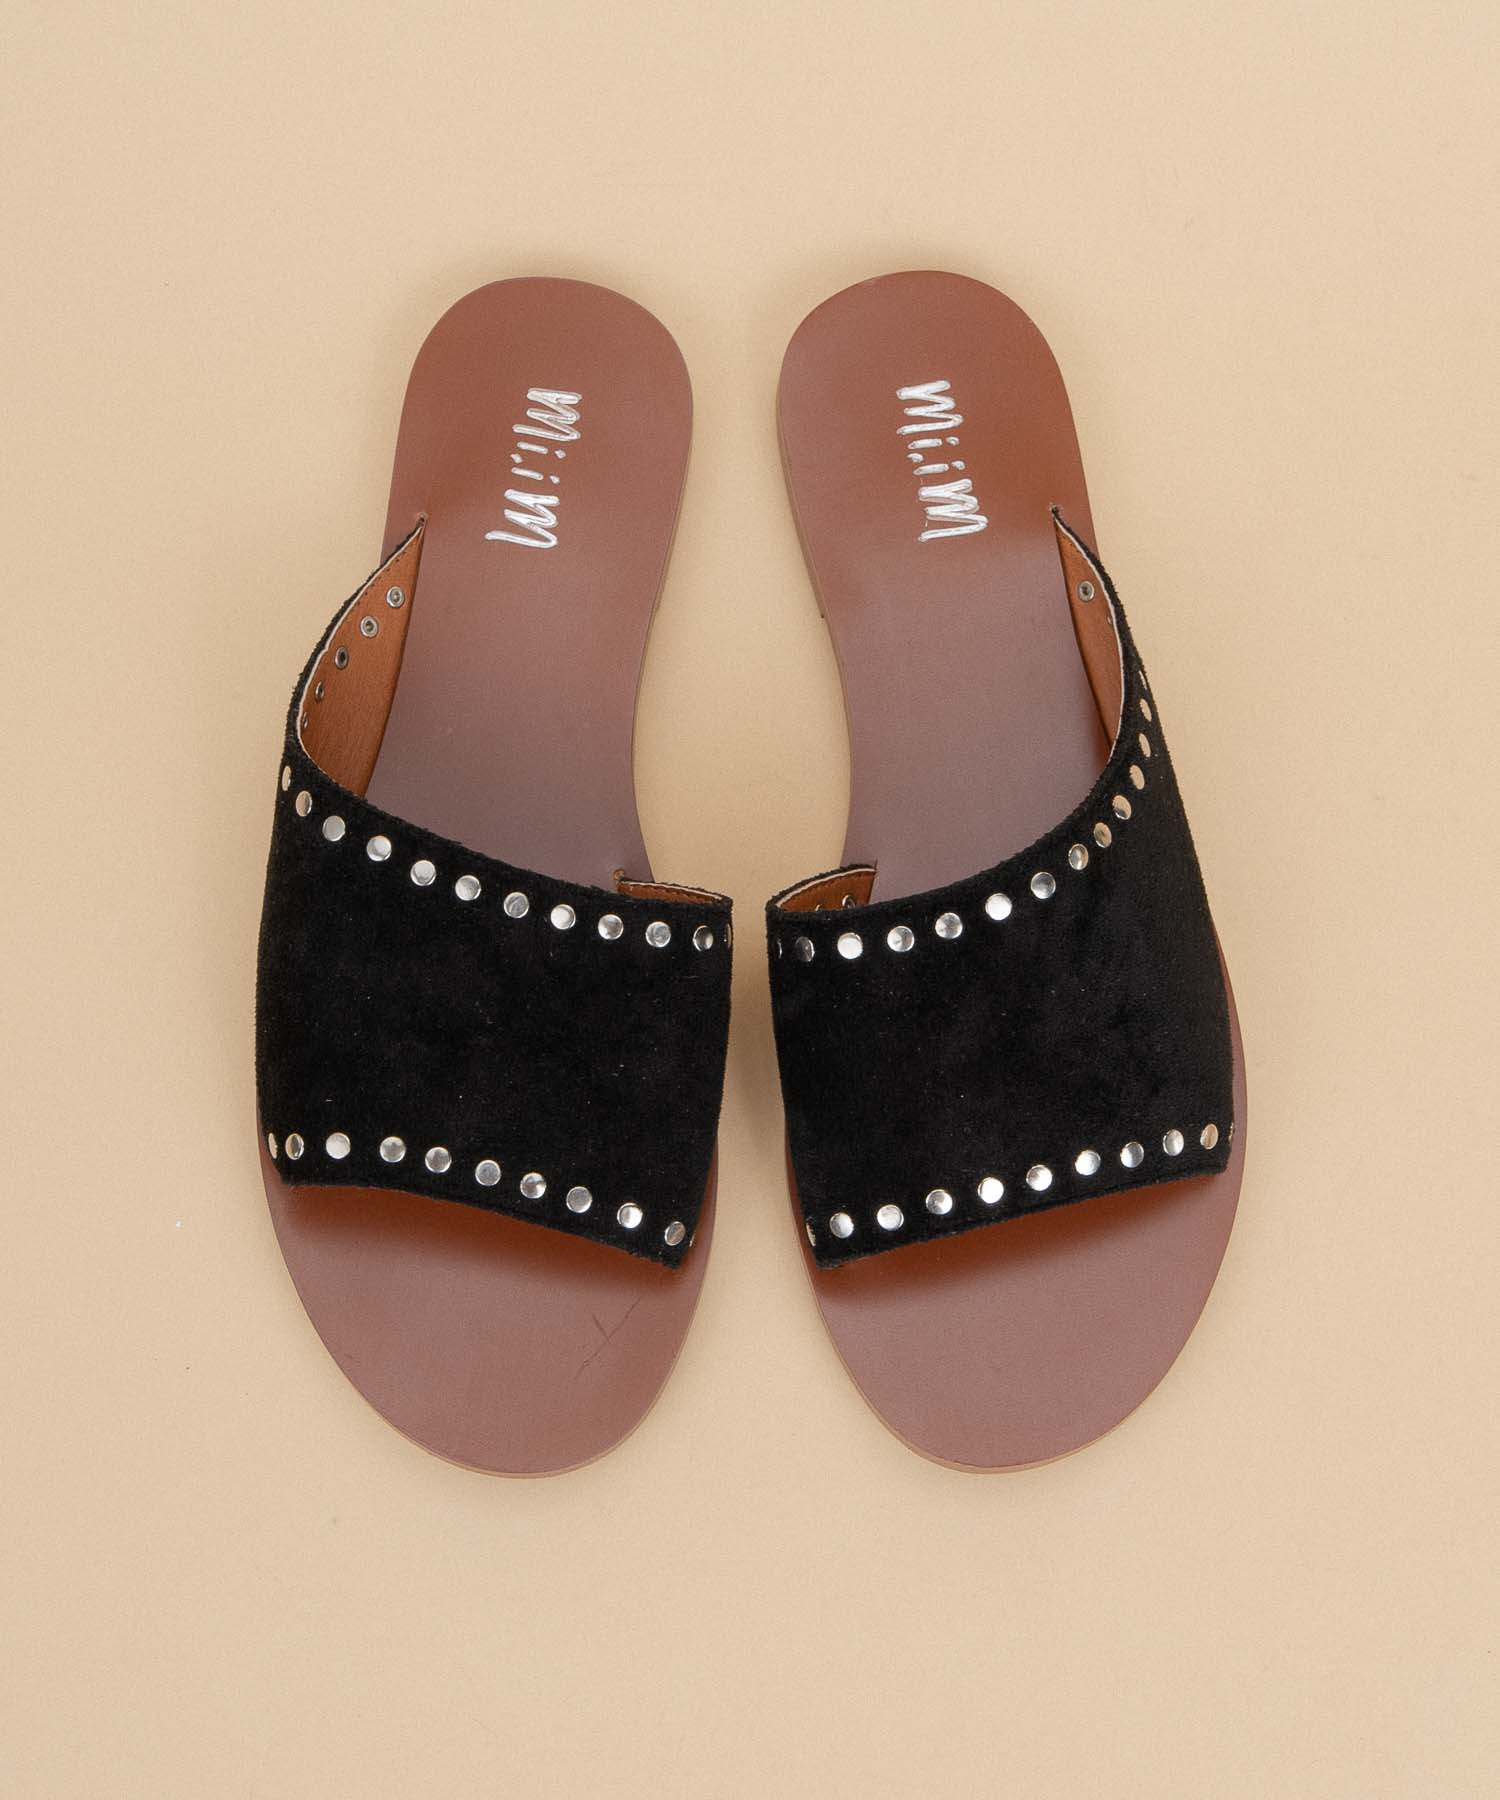 Treviso black Studded Asymmetrical Slide